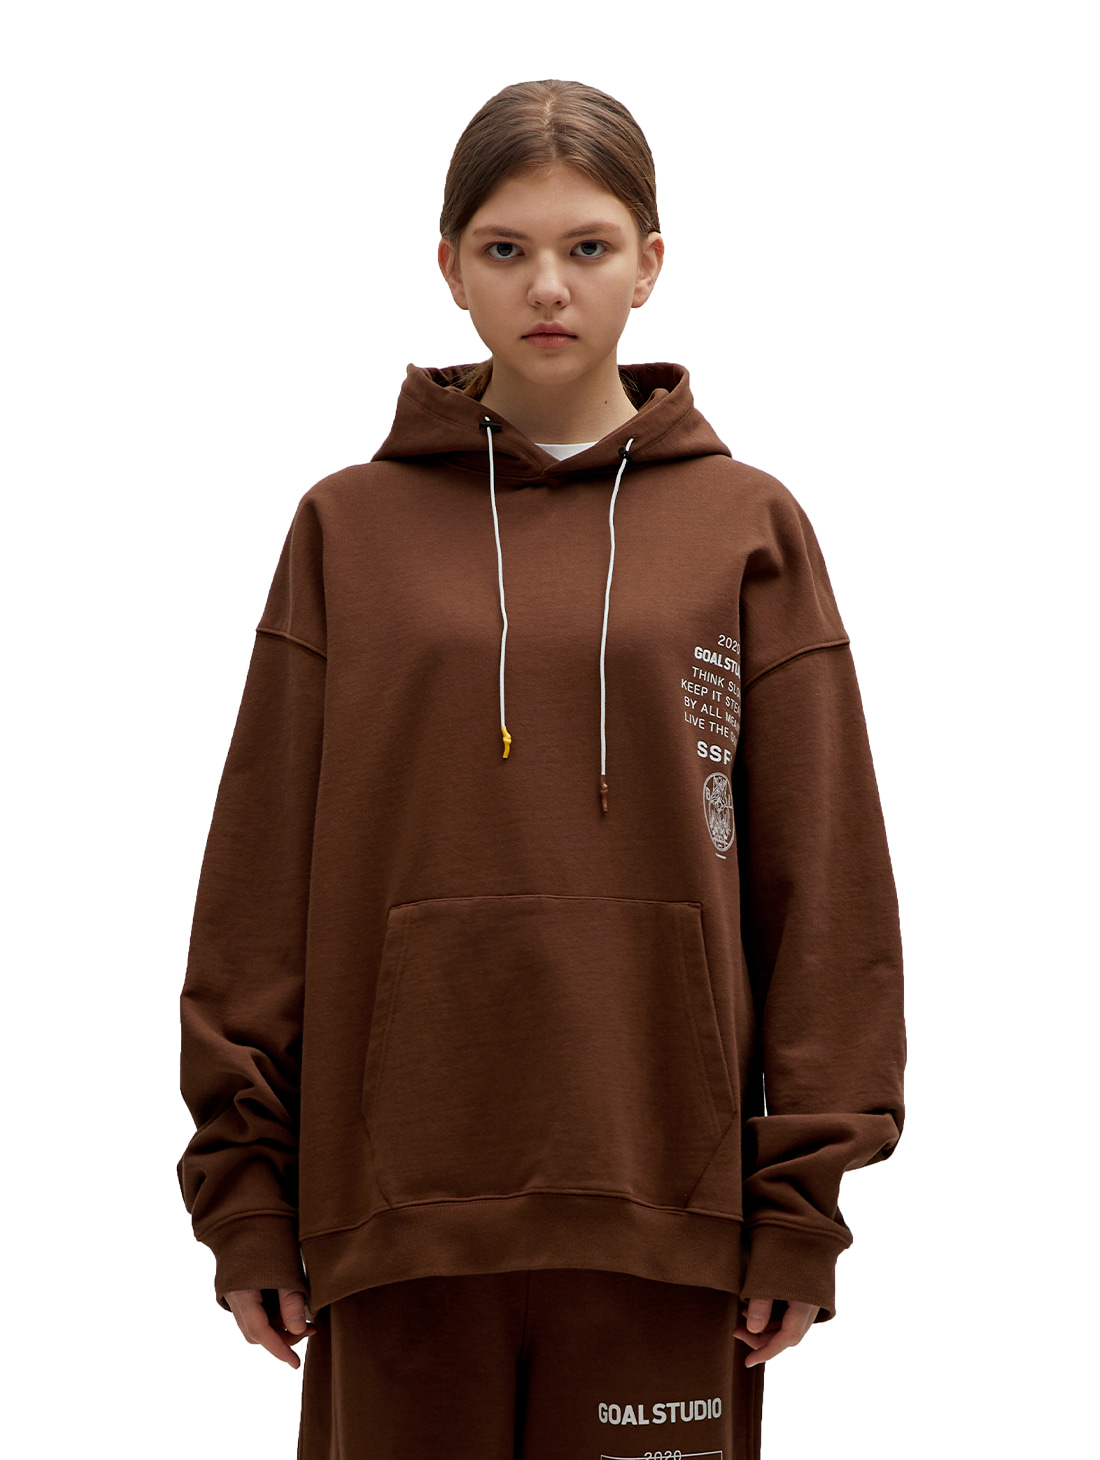 SSFC JERSEY HOODED SWEATSHIRT - BROWN